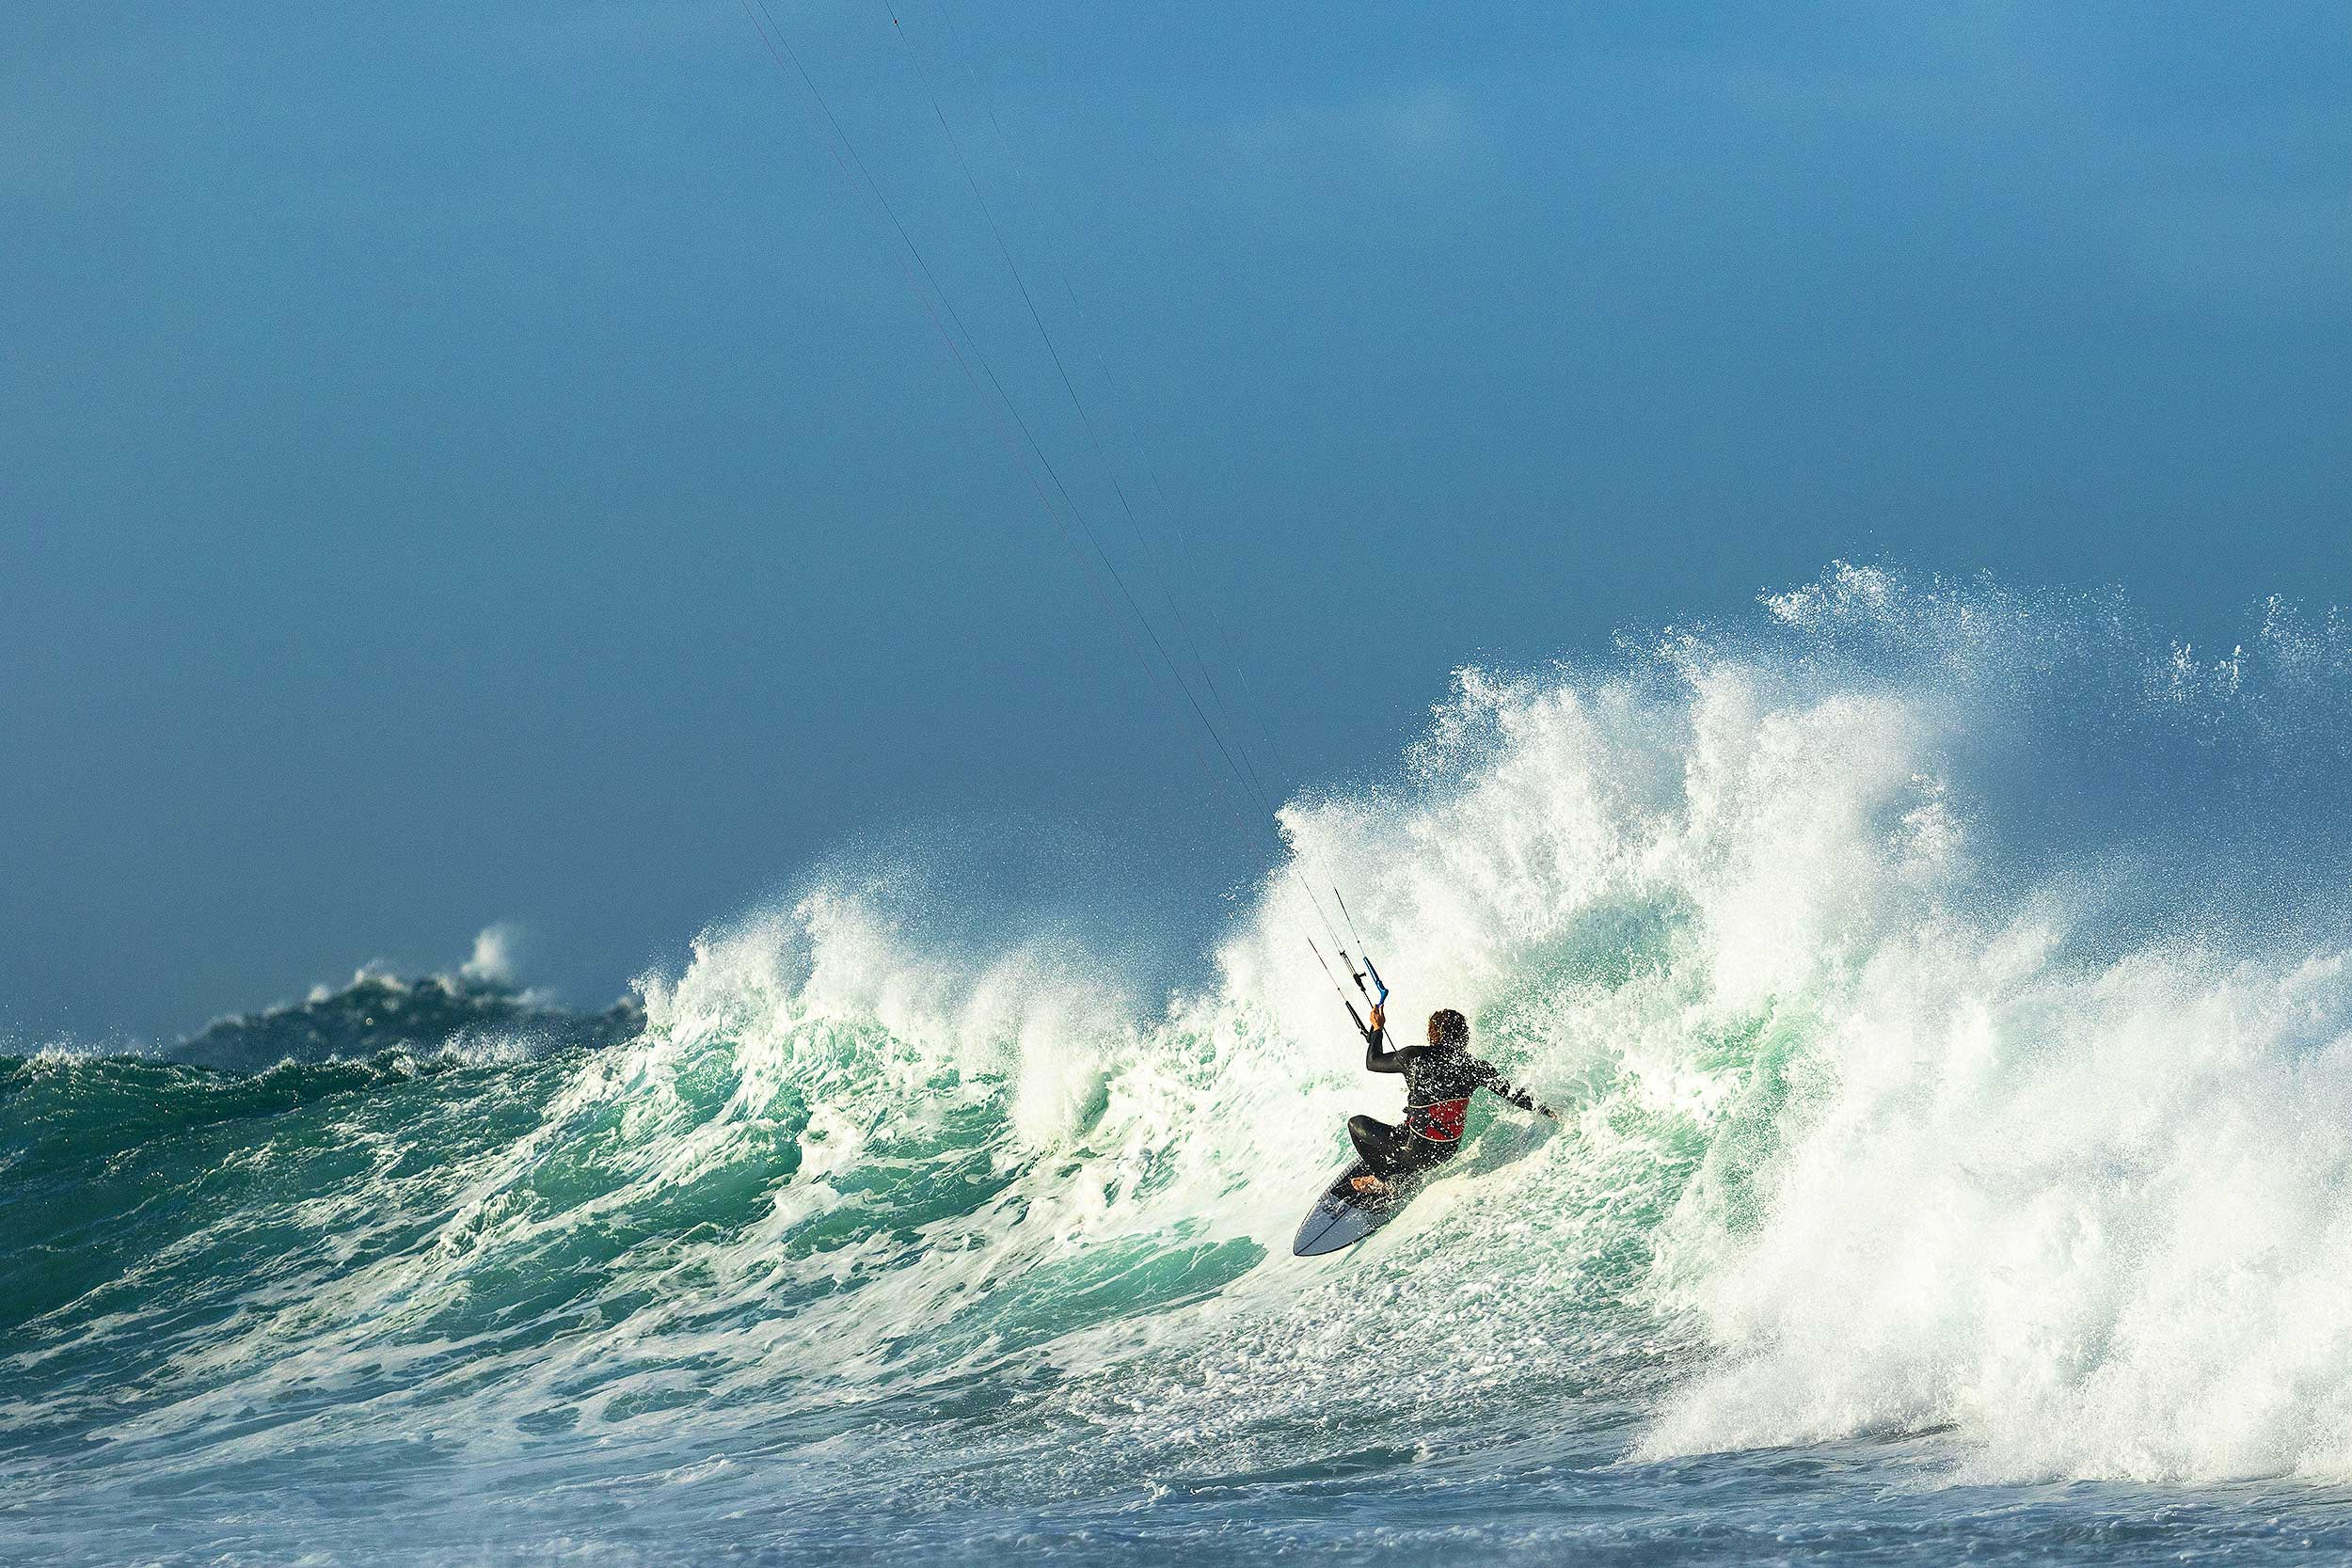 Luke Atkinson kitesurfing in New South Wales